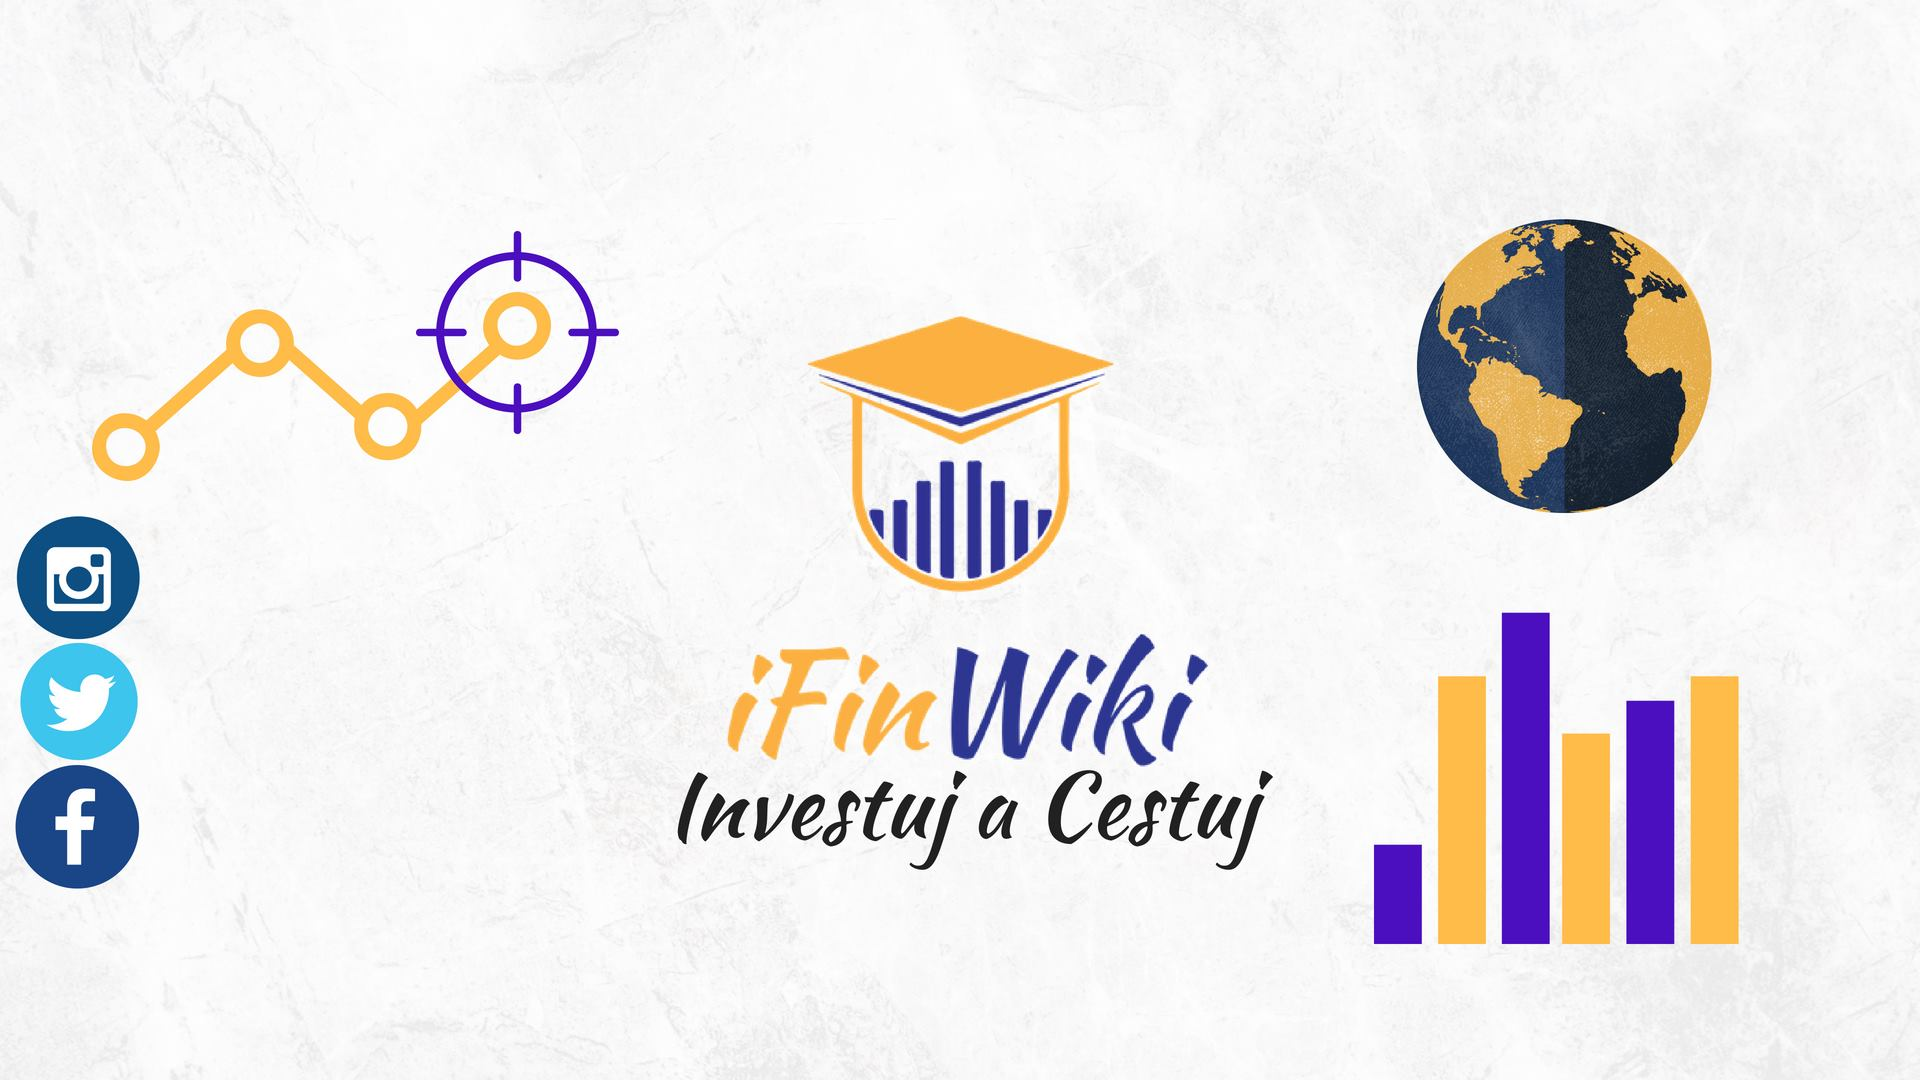 iFinWiki – Who are we and what are we doing?